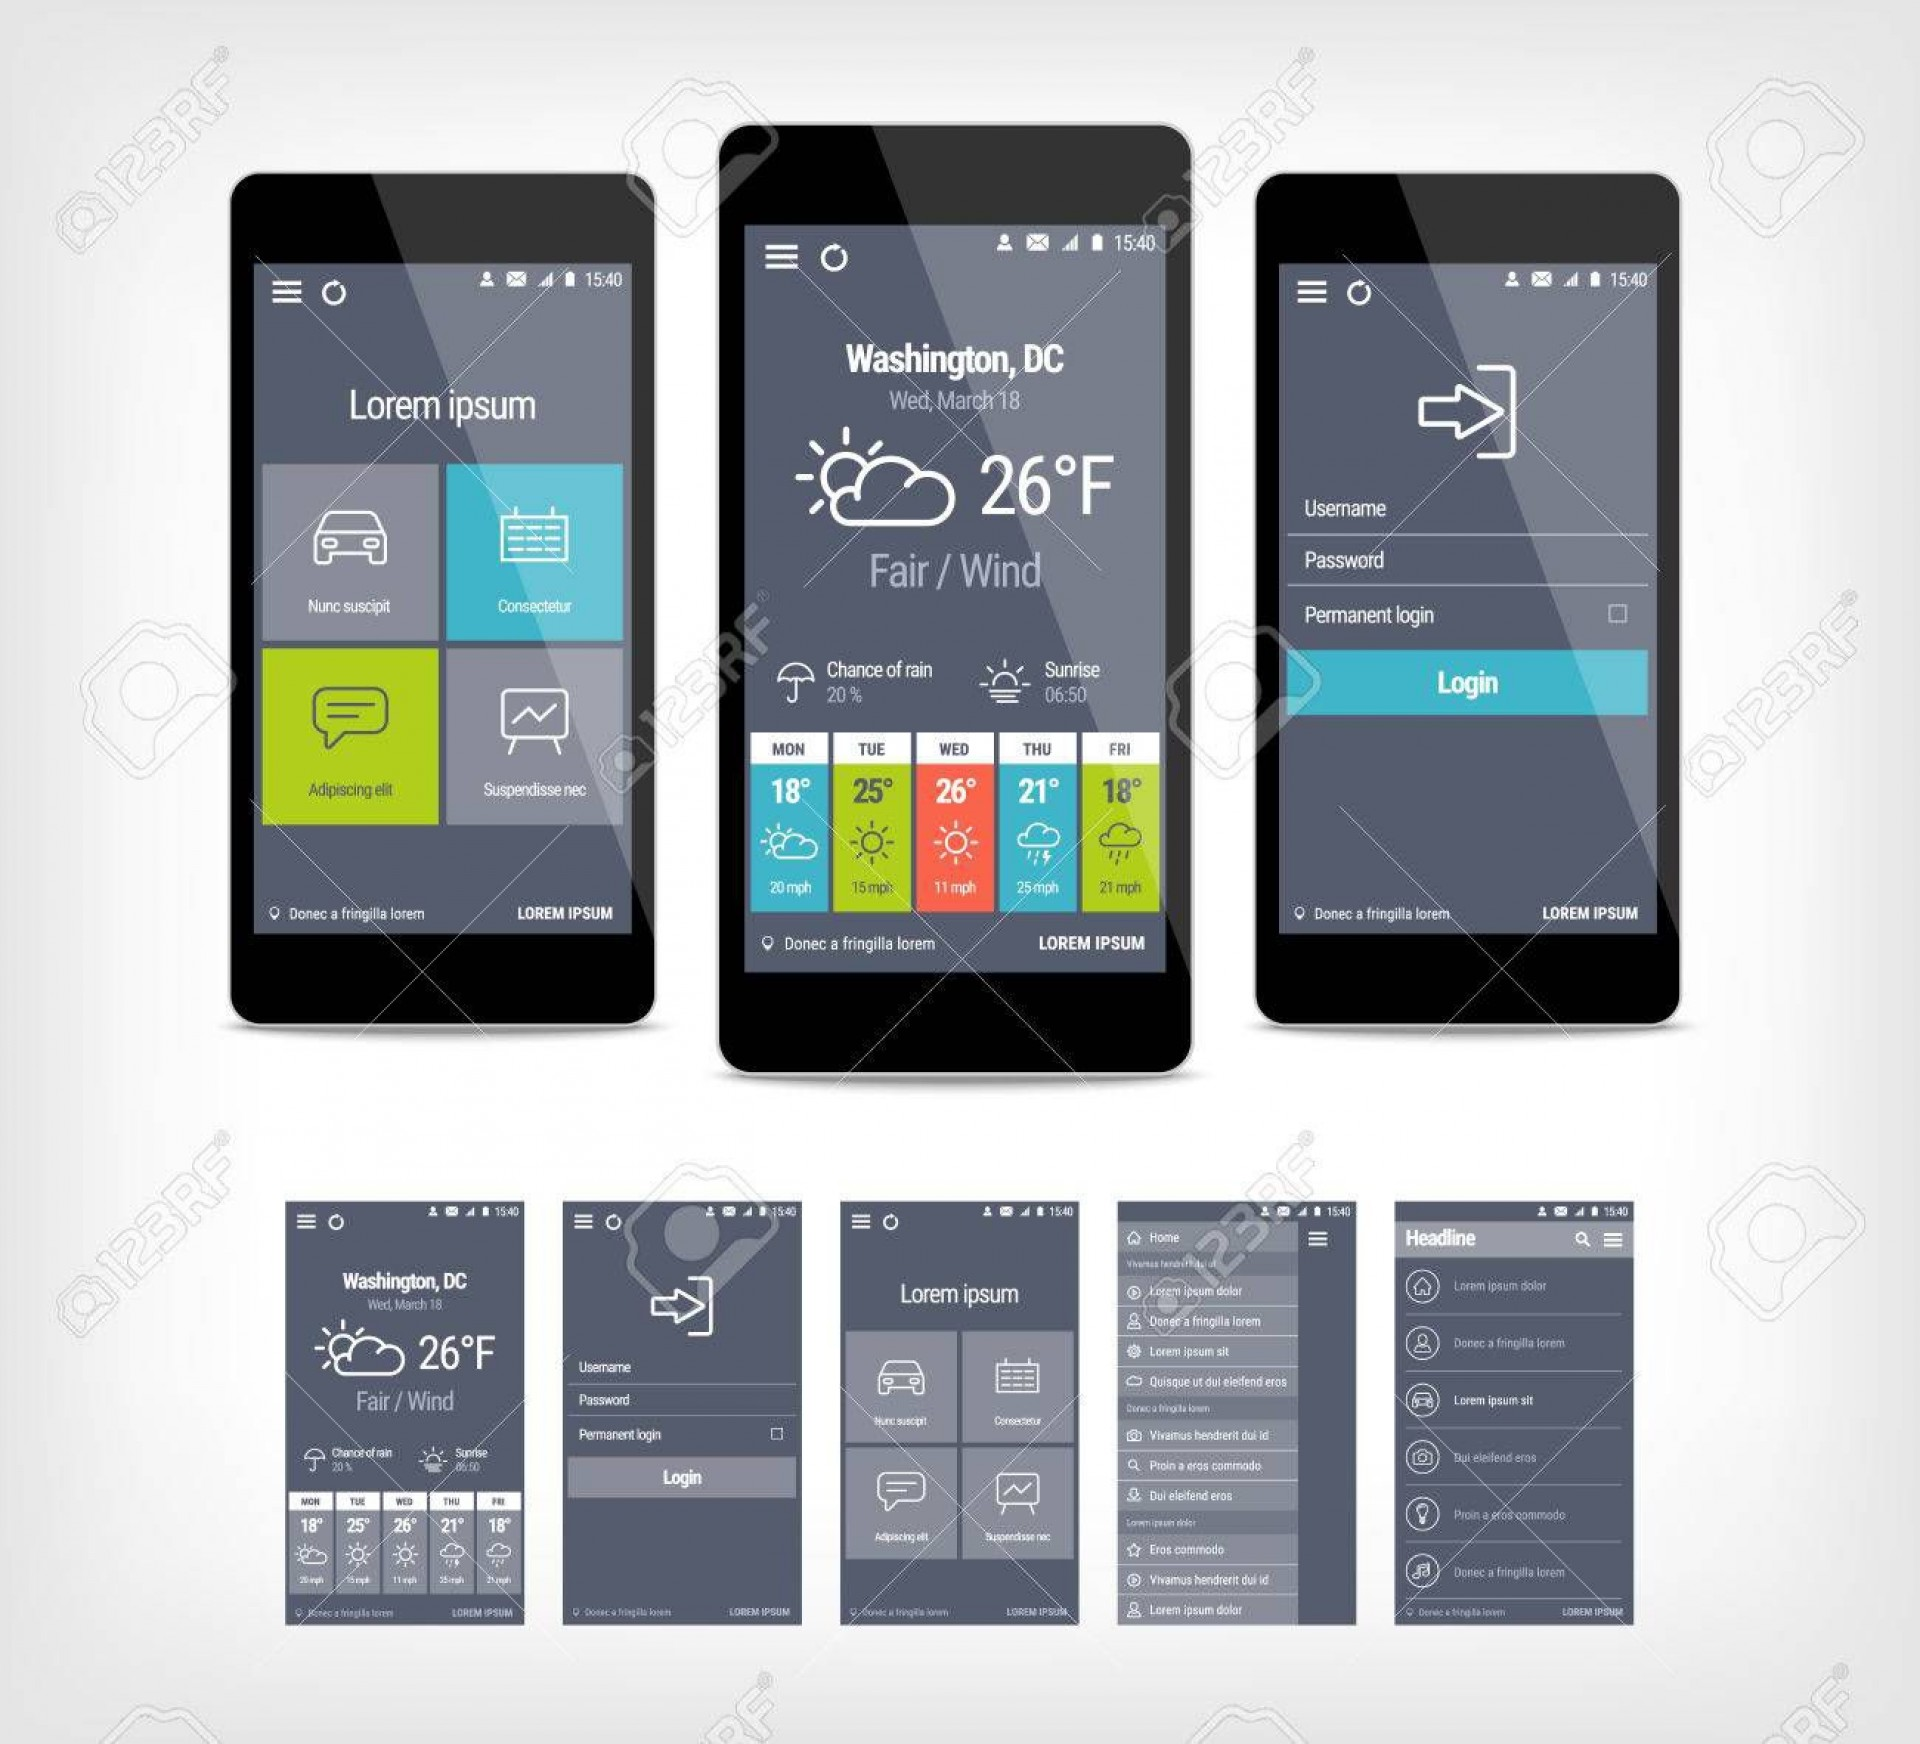 001 Remarkable Mobile App Design Template Example  Size Free Download Ui Psd1920